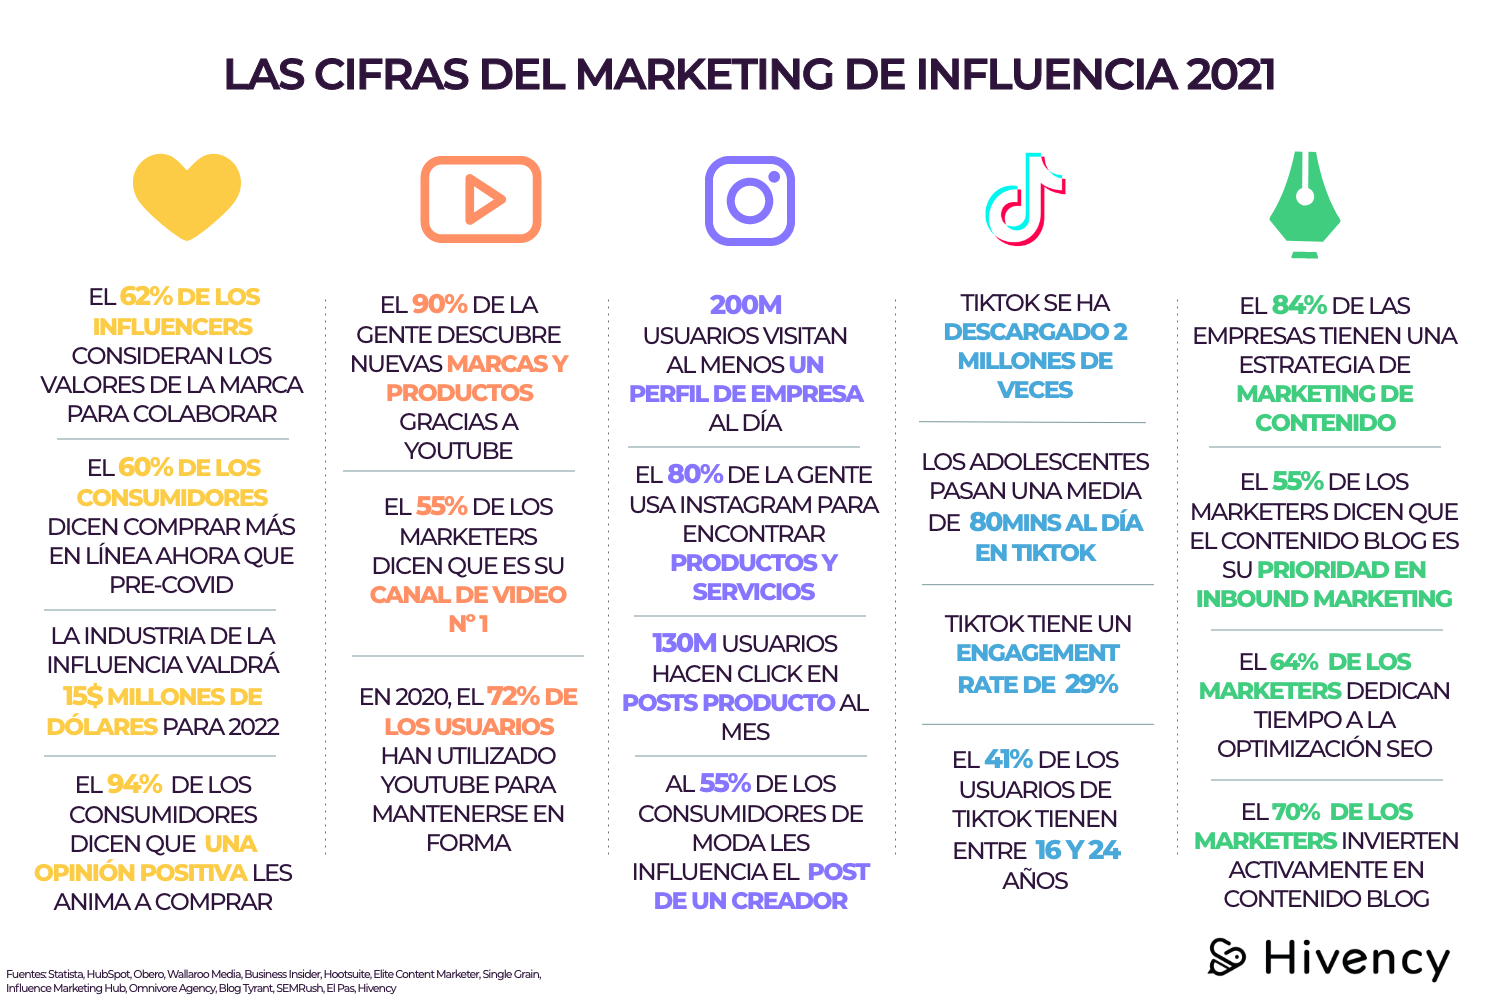 cifras_marketing_influencia_2021